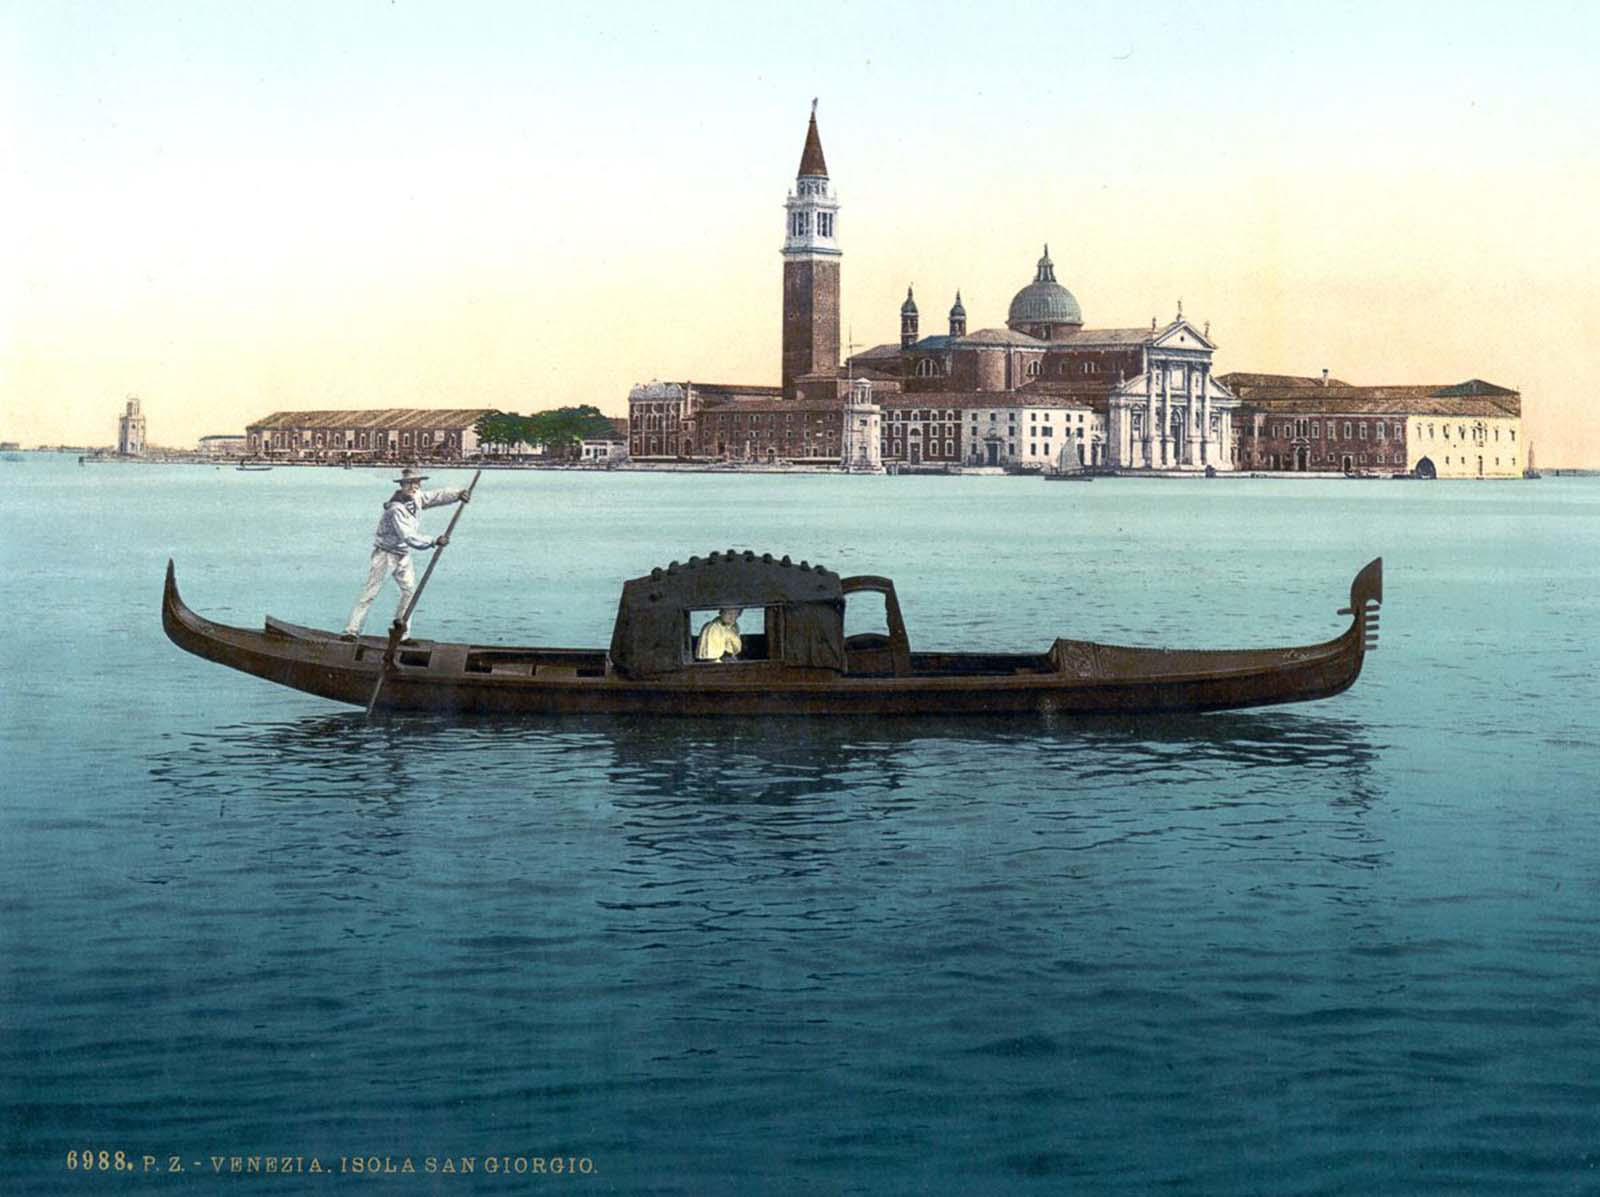 venice-in-beautiful-old-color-images-1890_11.jpg